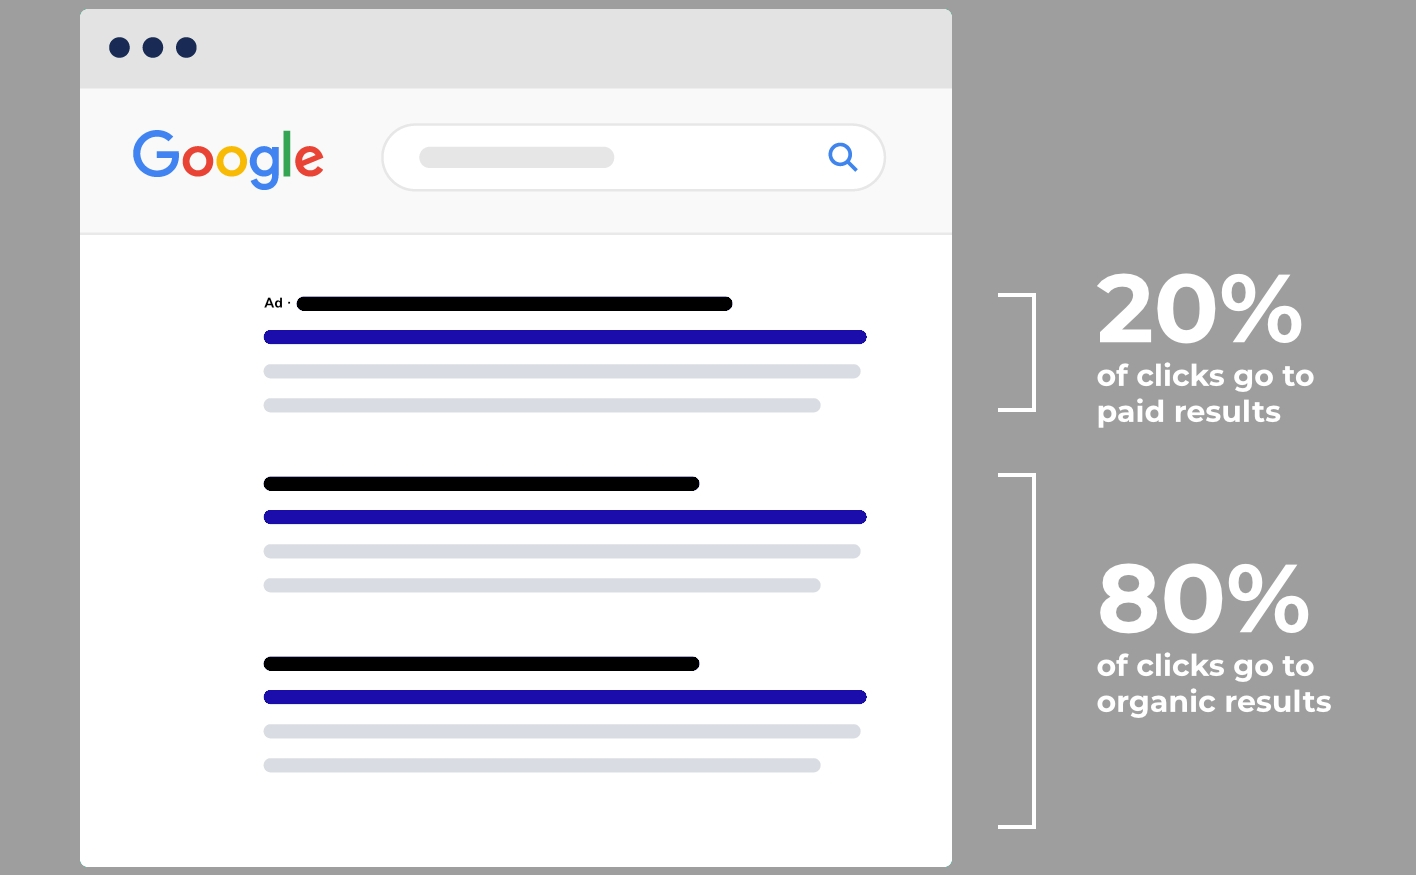 The typical split of clicks between paid and organic search results in Hong Kong